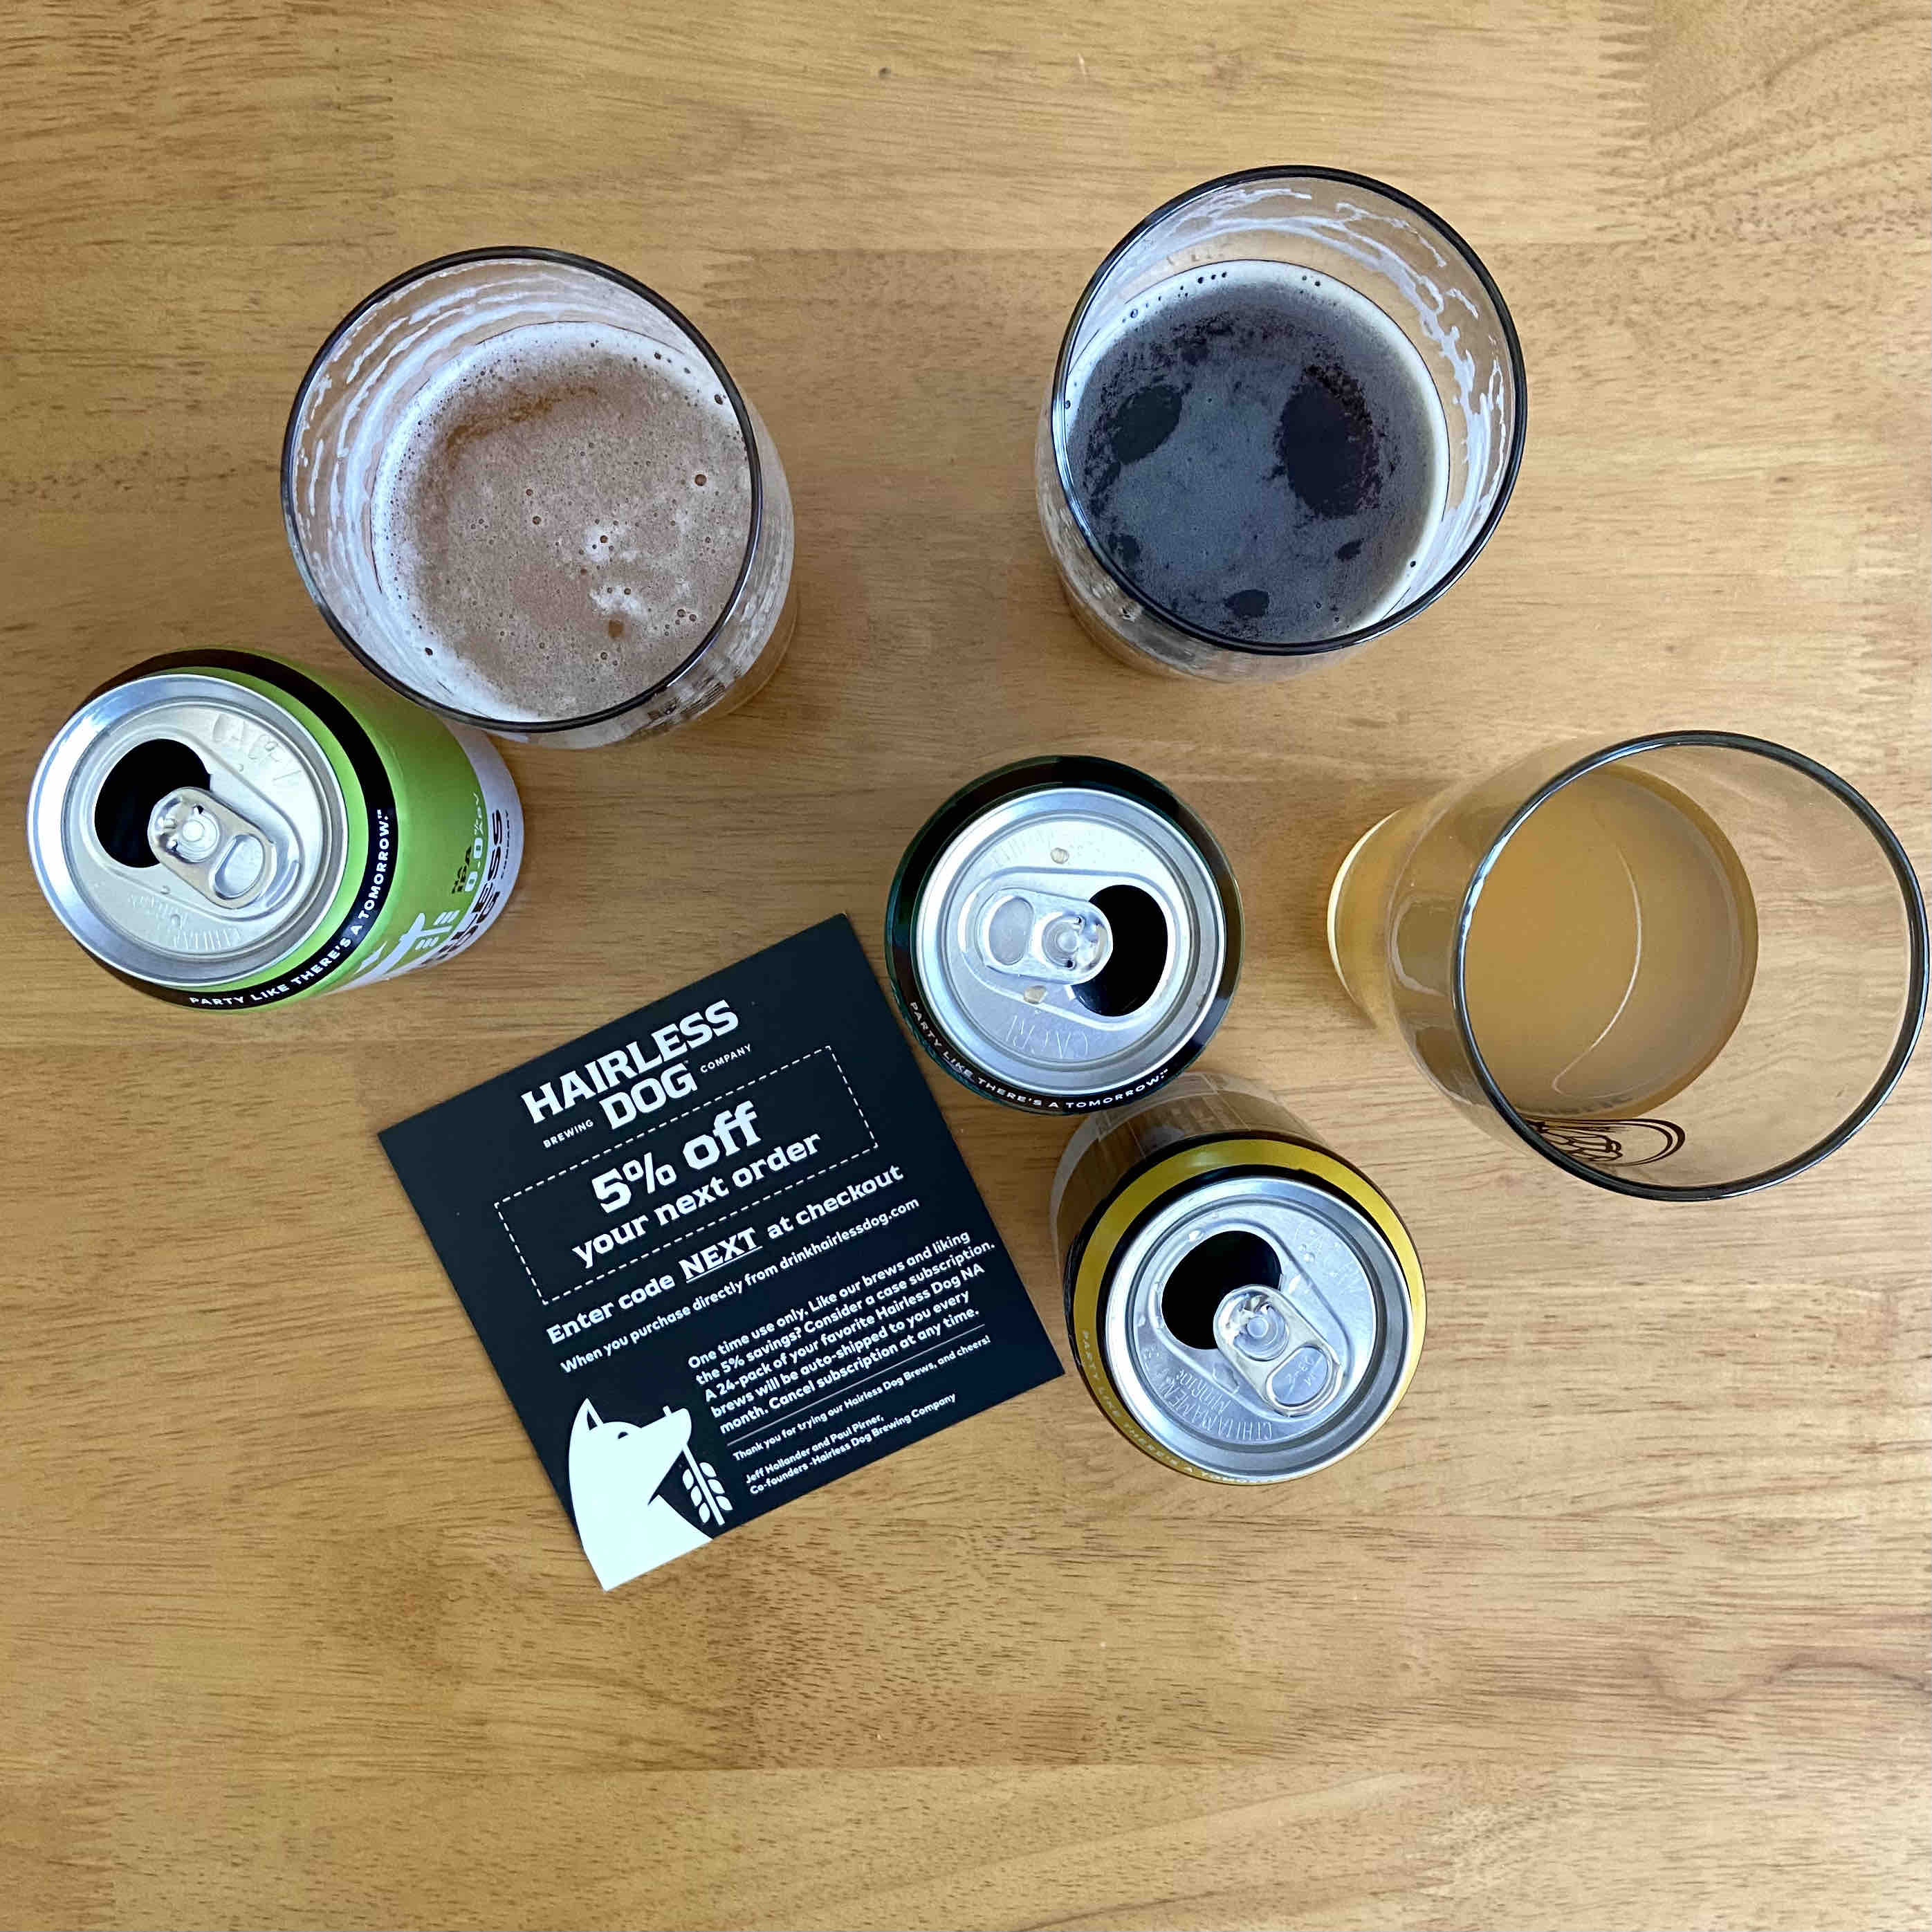 Hairless Dog Brewing has a lineup of 0.0% ABV beers.